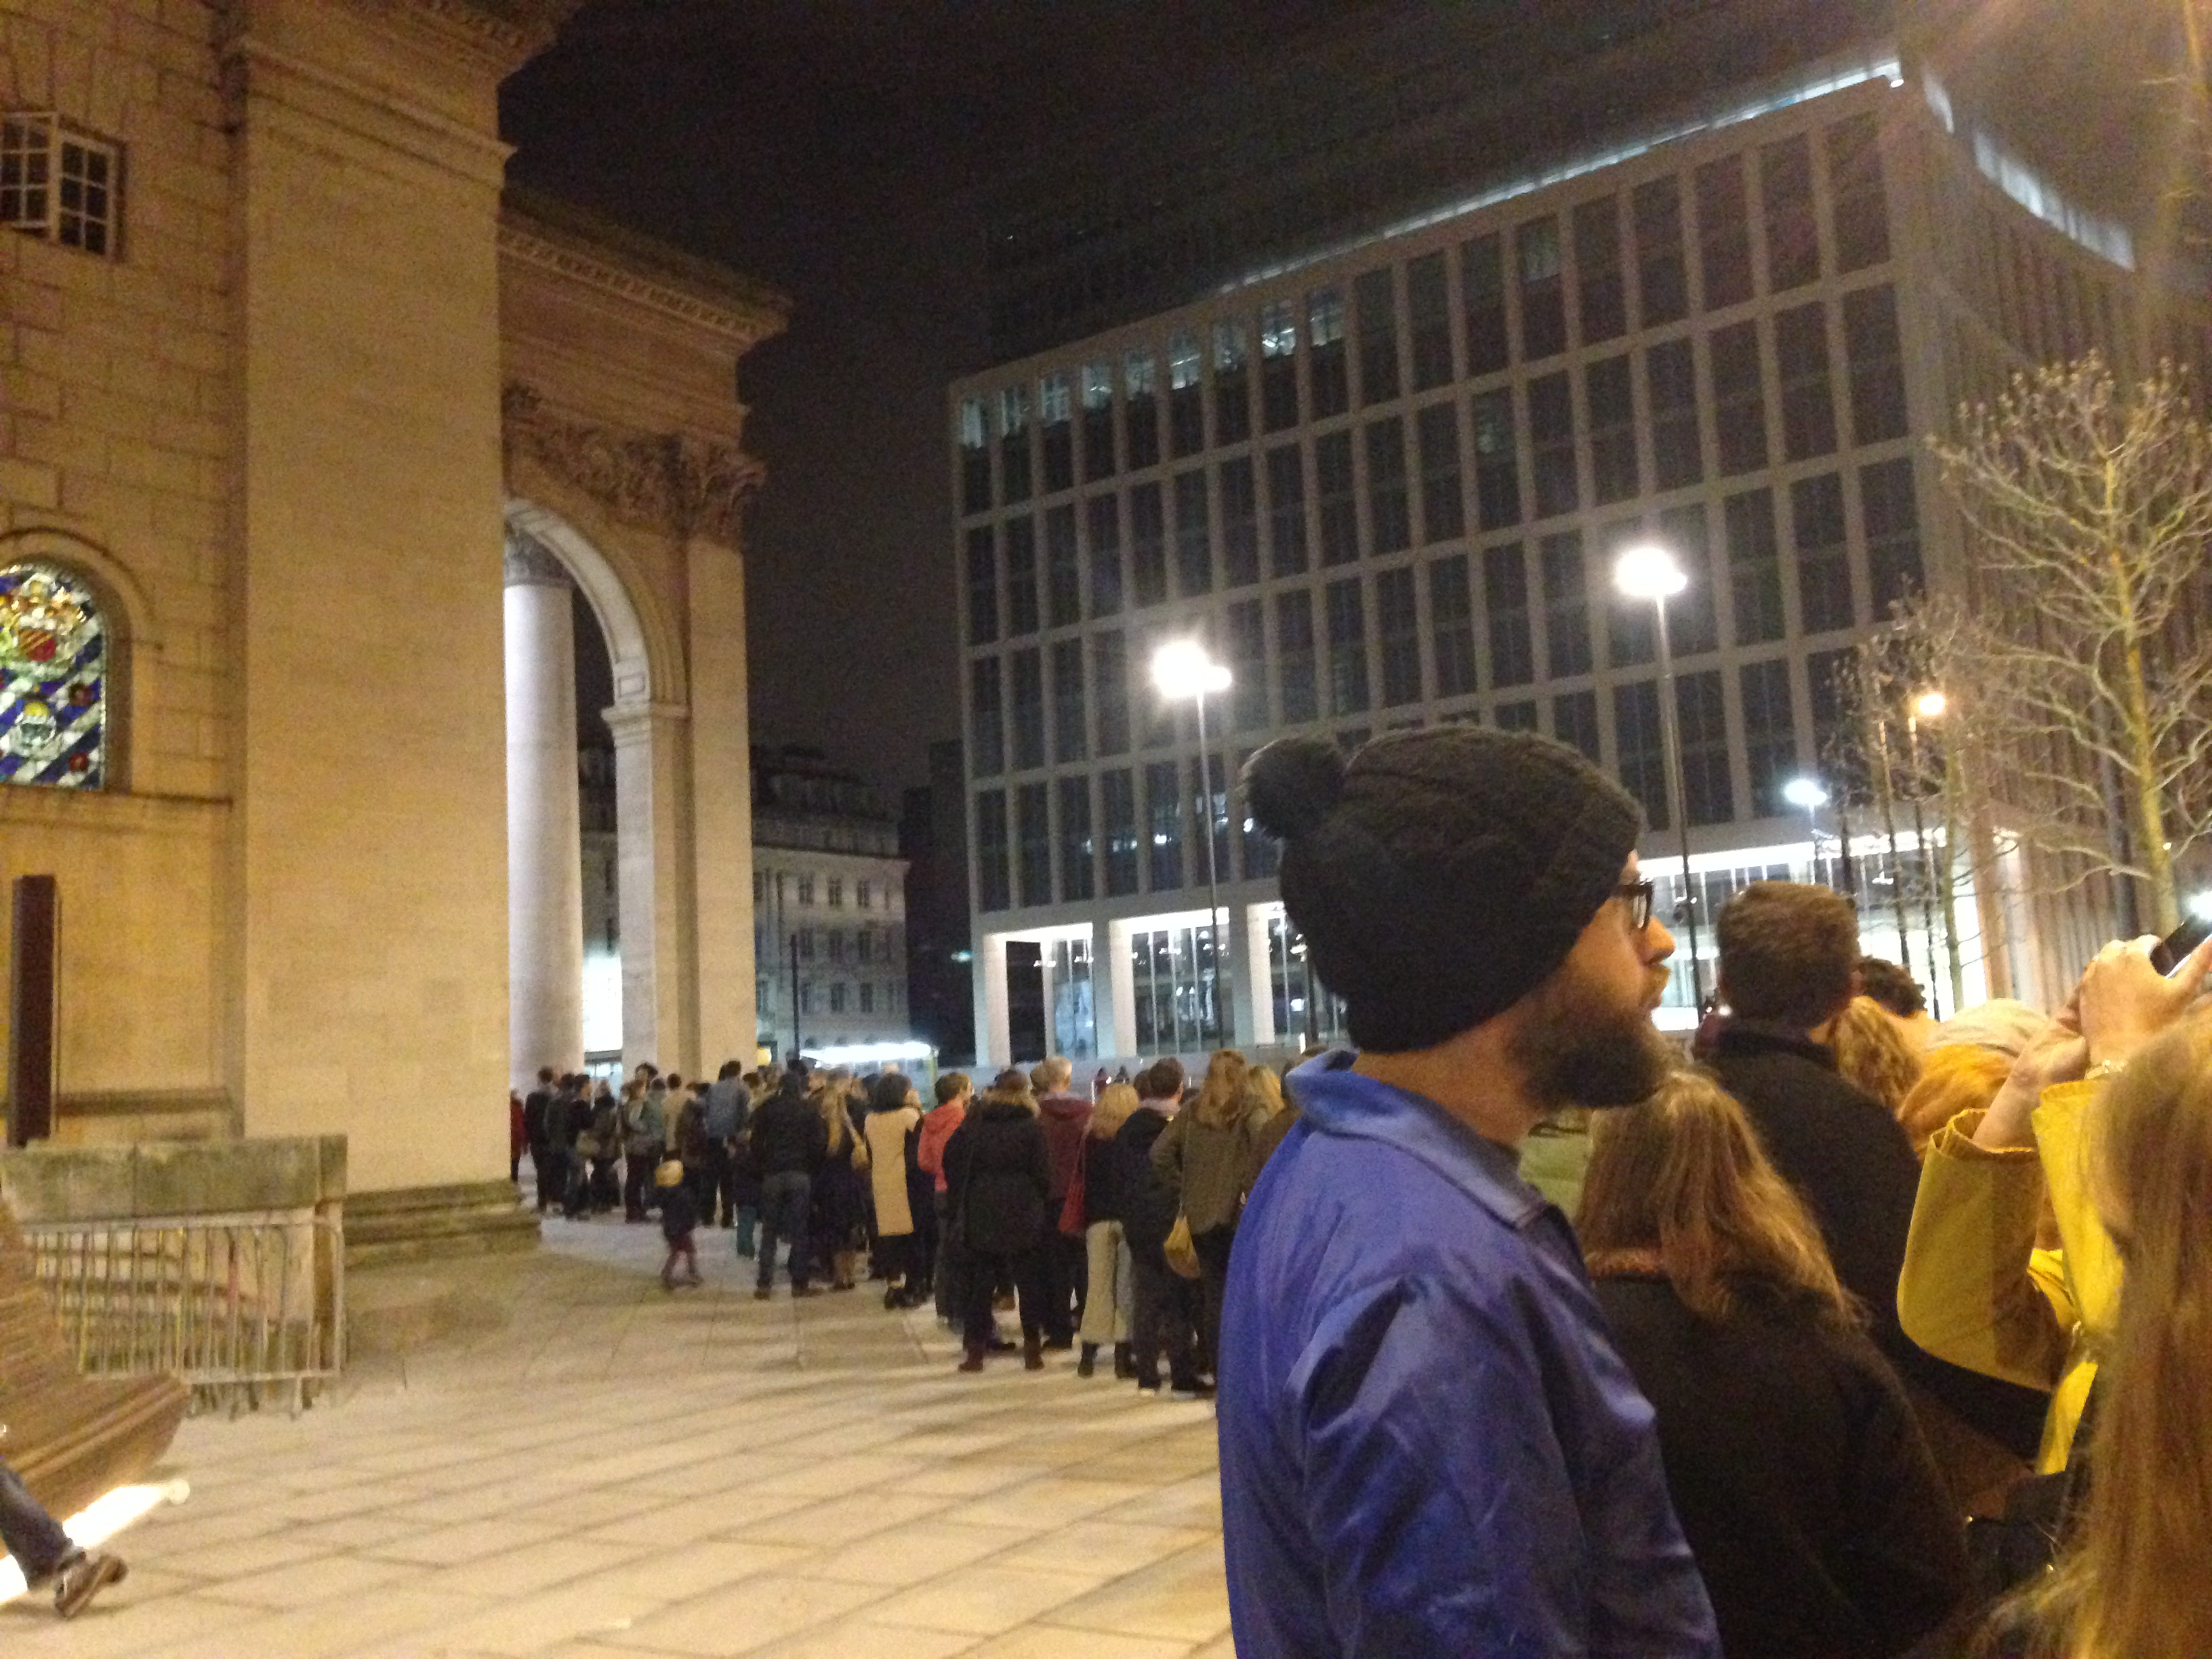 Queues to get into Manchester Central Library for Library Live event